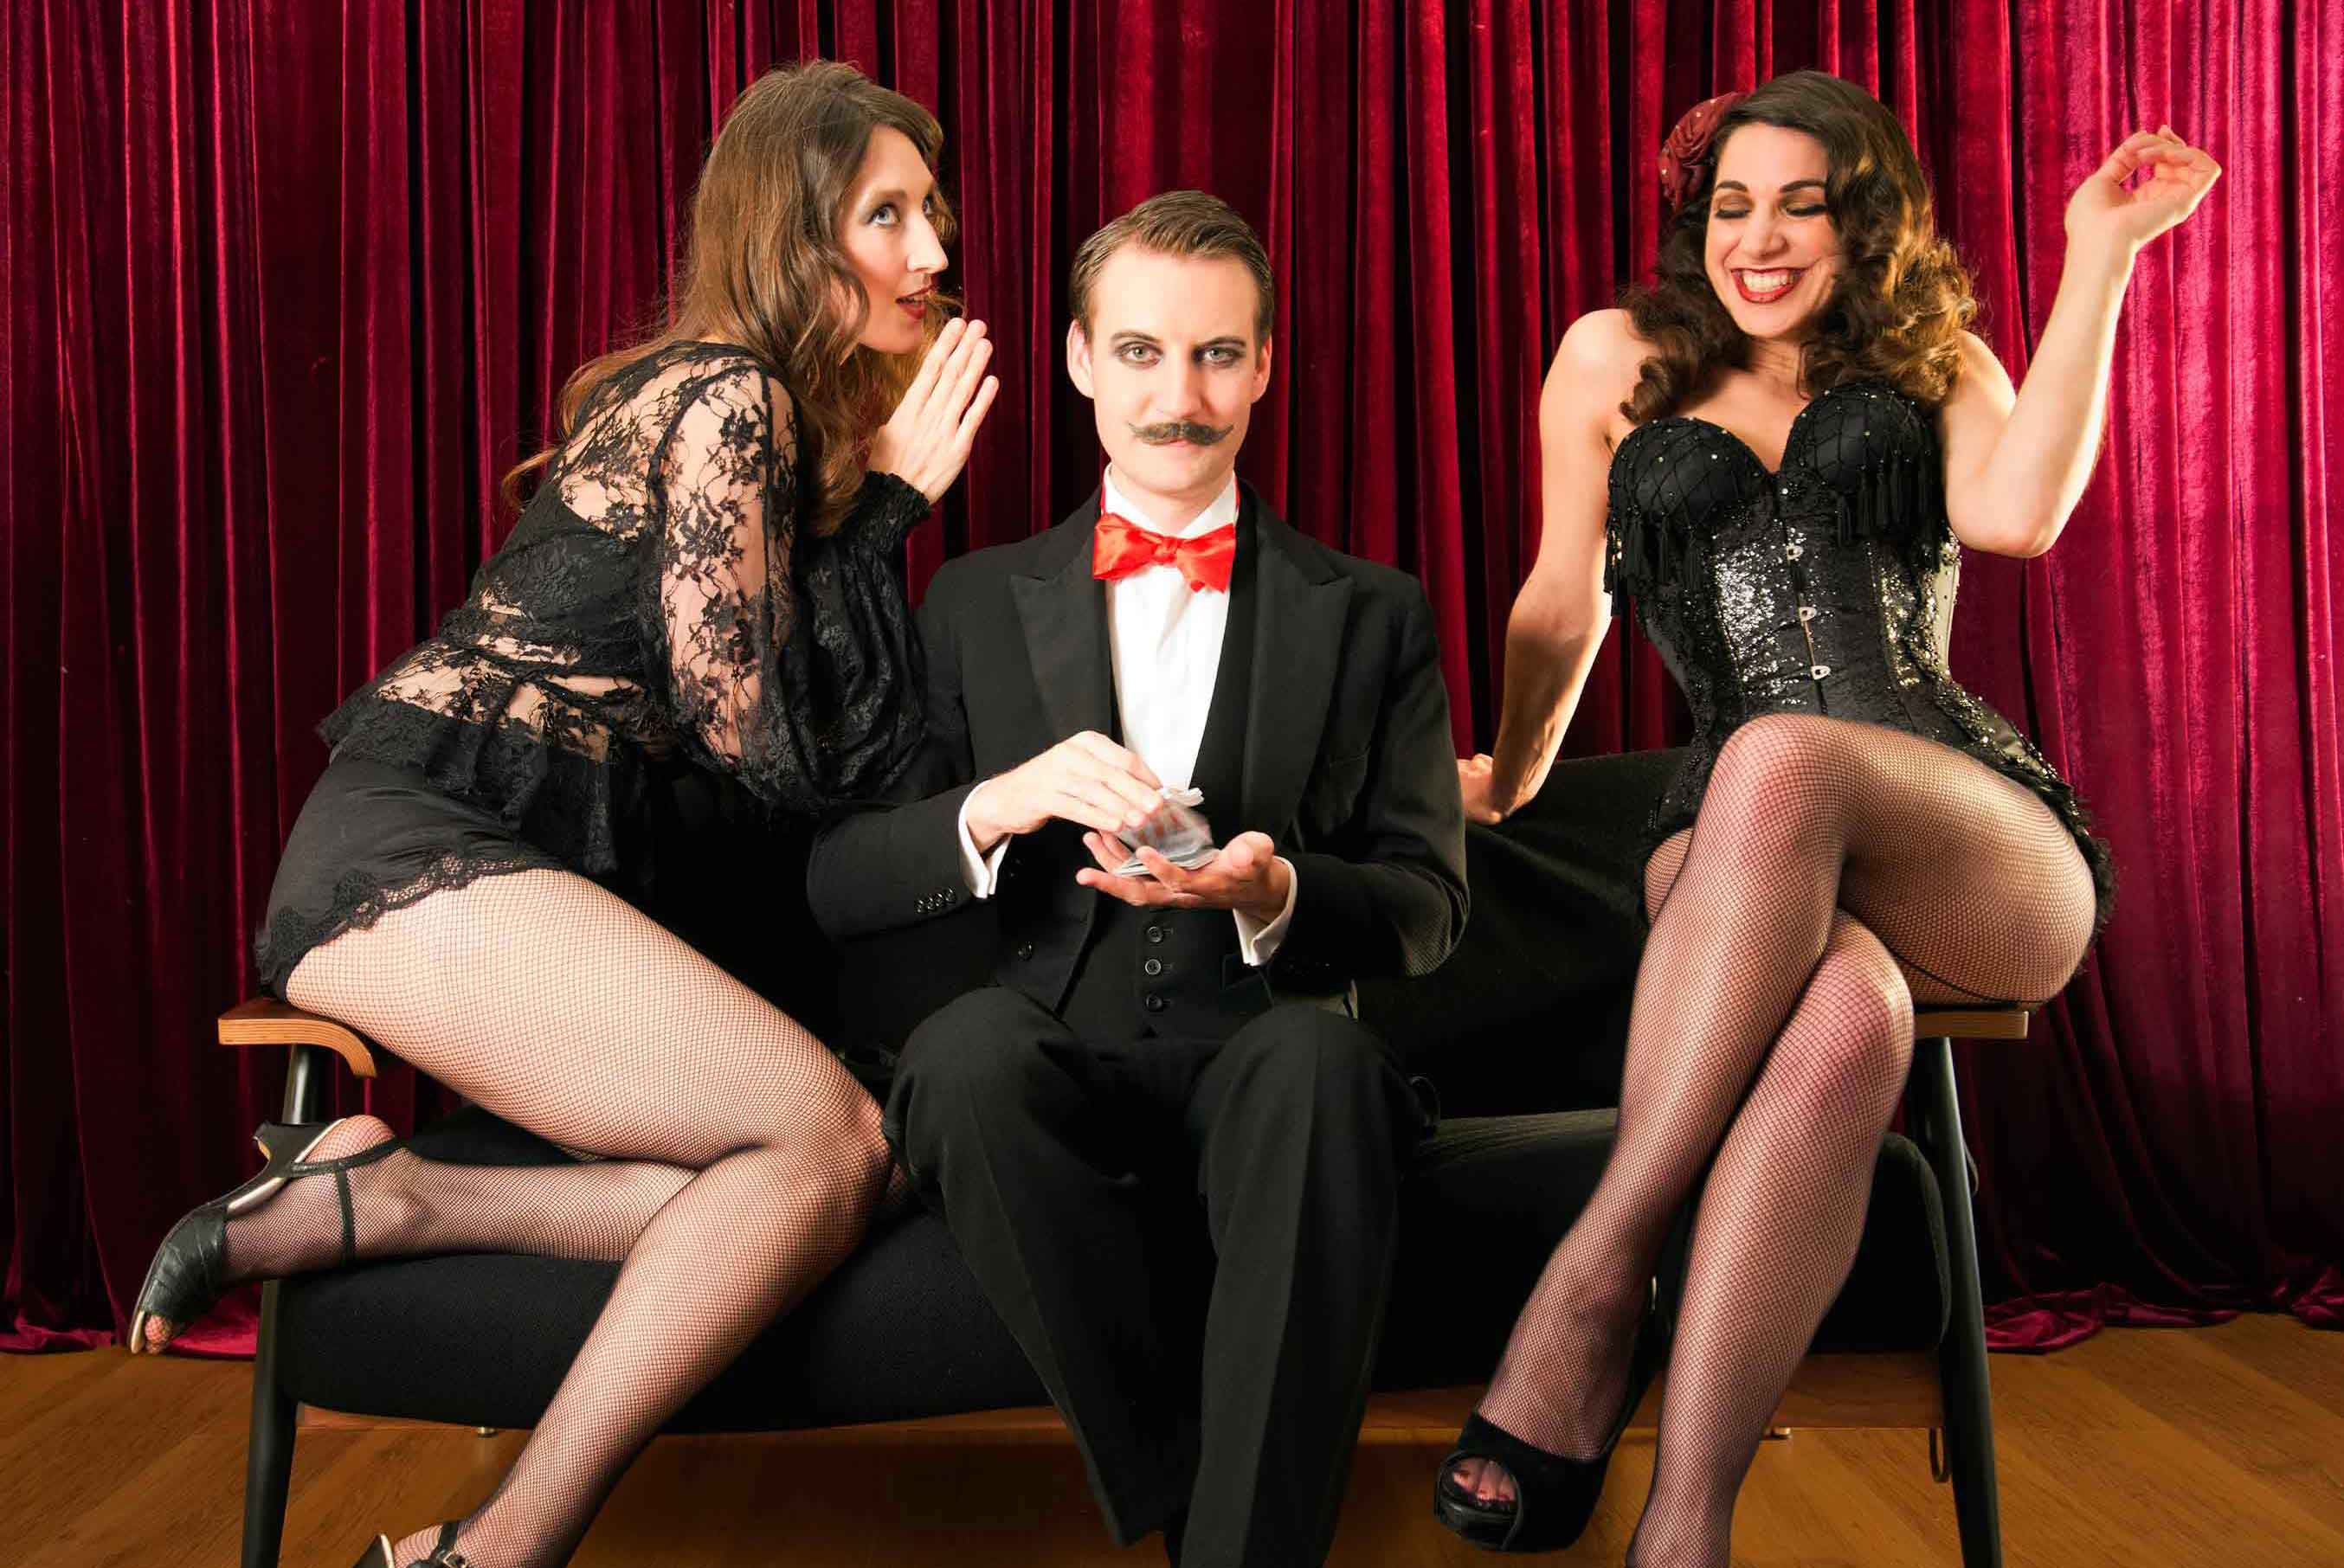 Close-up magician Norvil and the Vedettes gossip on the sofa.